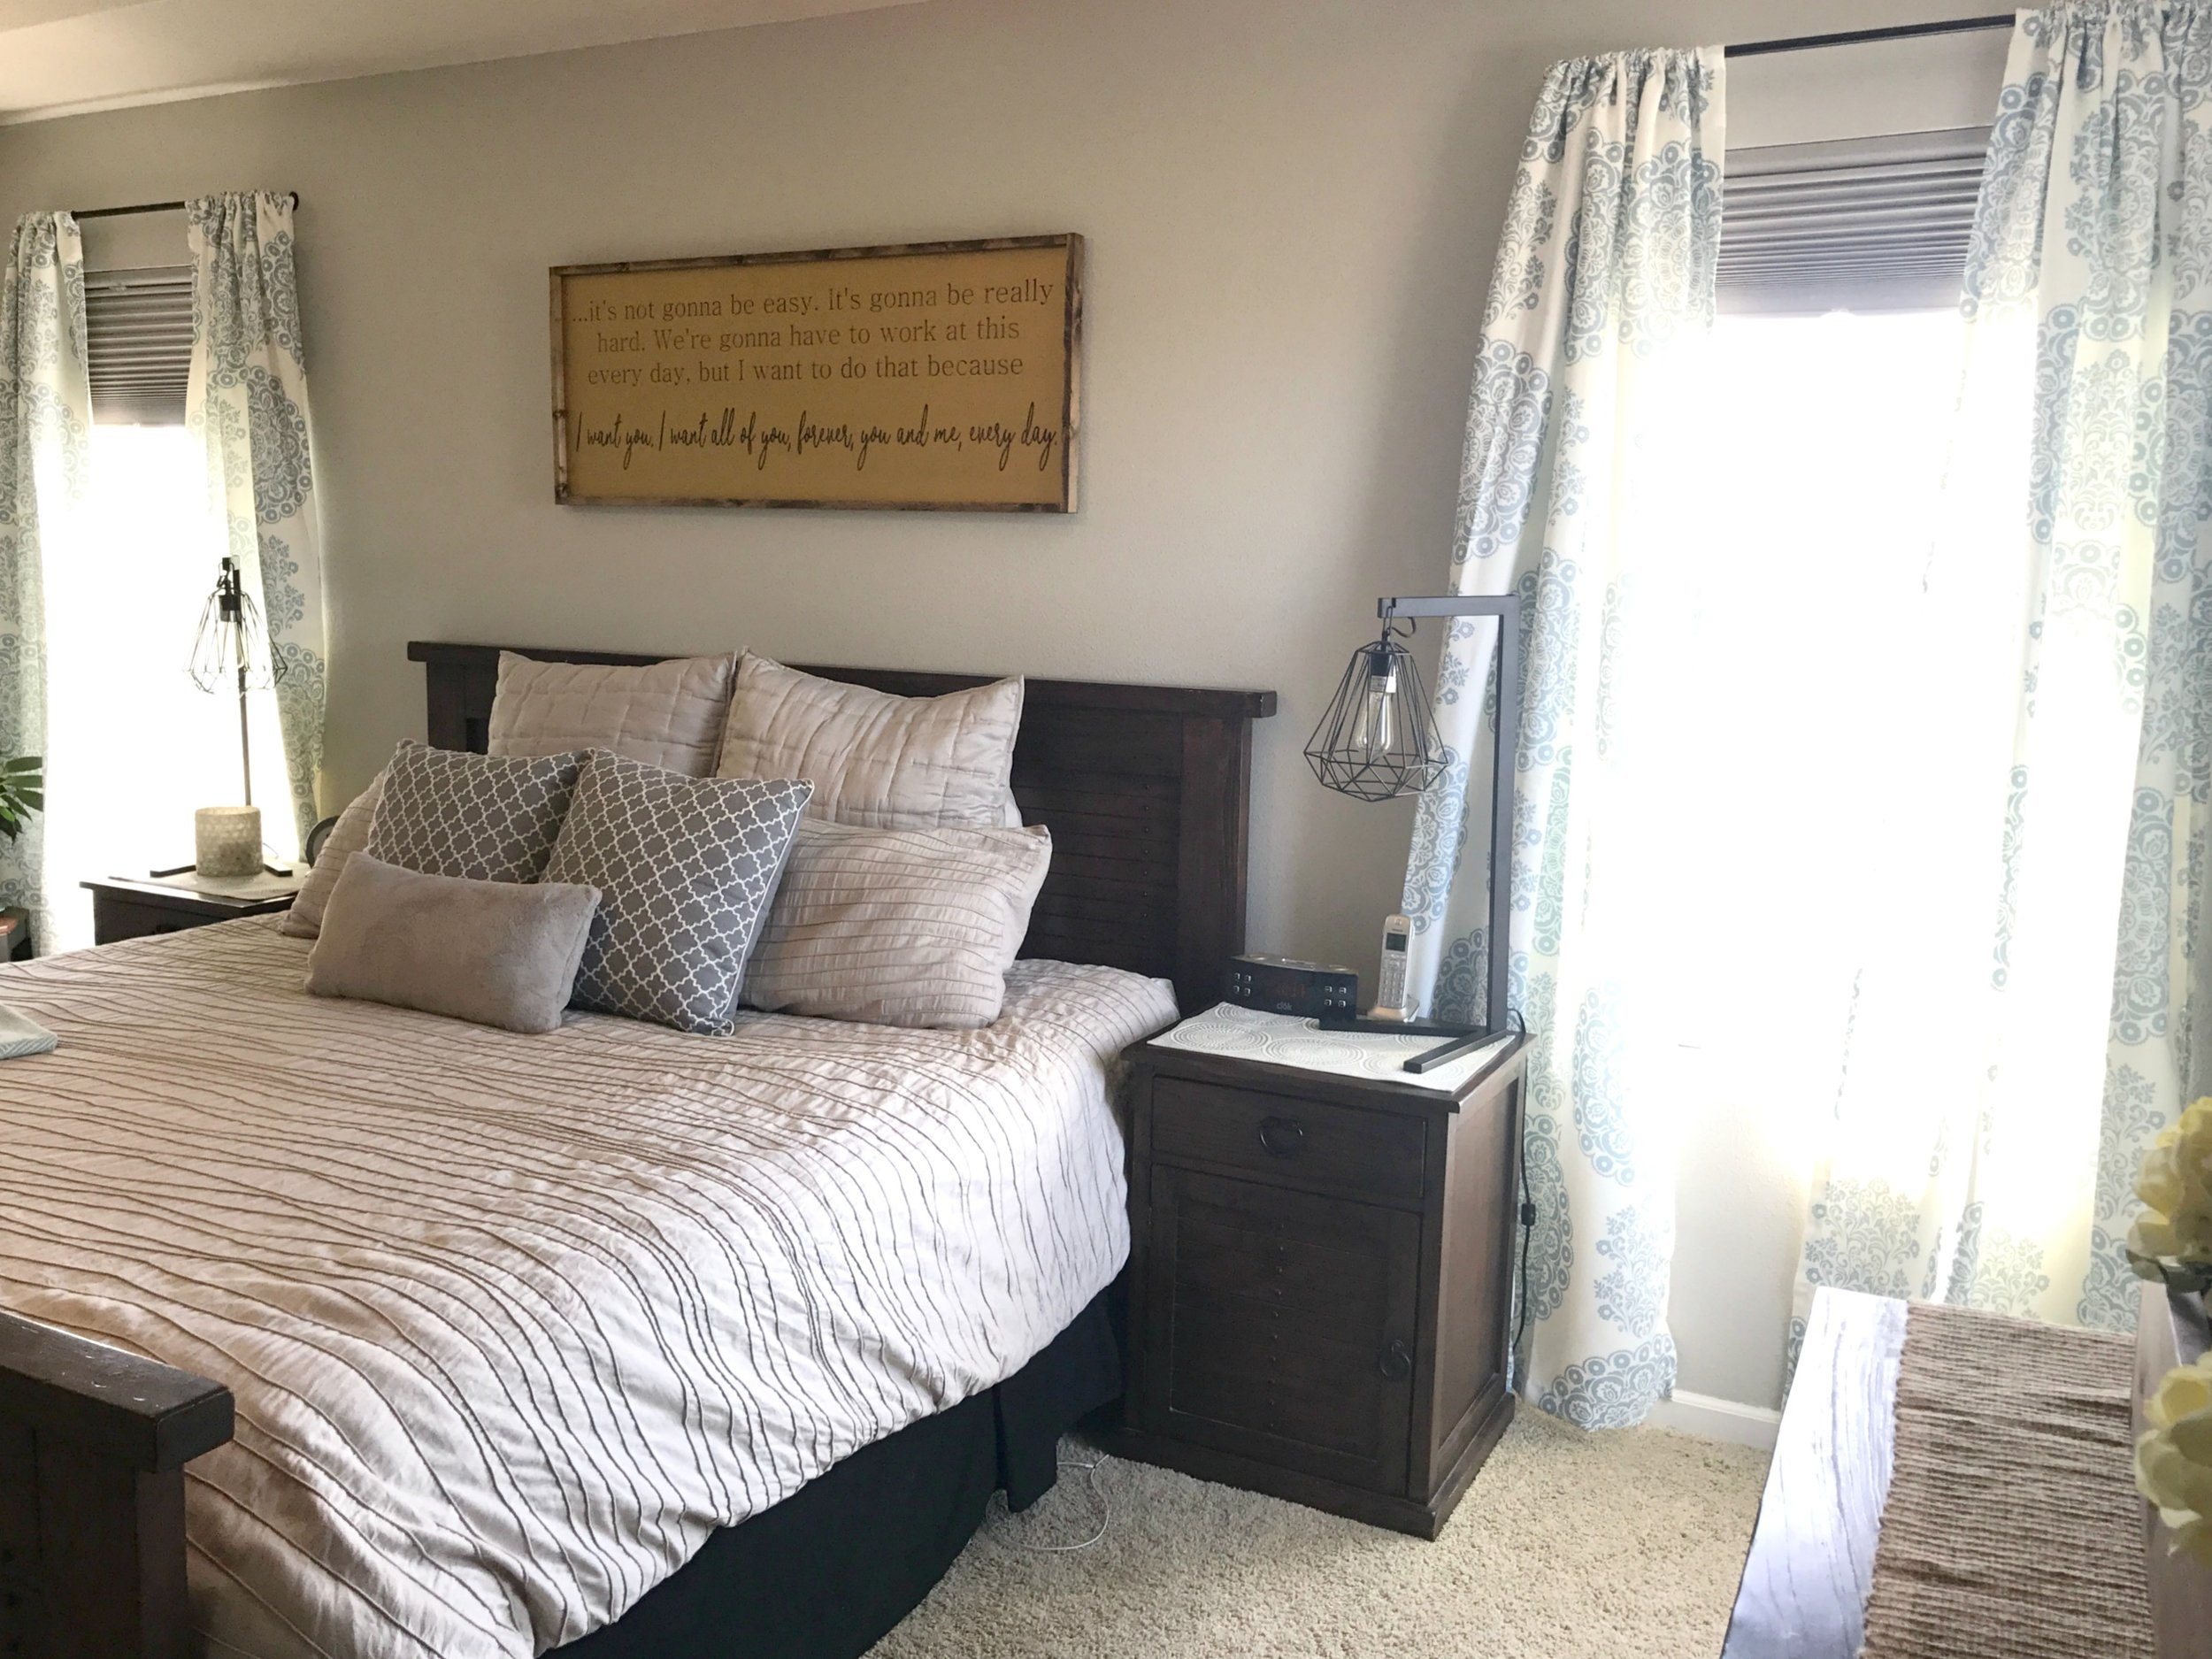 H.Prall & Co. Interior Decorating | Light and Bright Master Bedroom Makeover (AFTER) | hprallandco.com